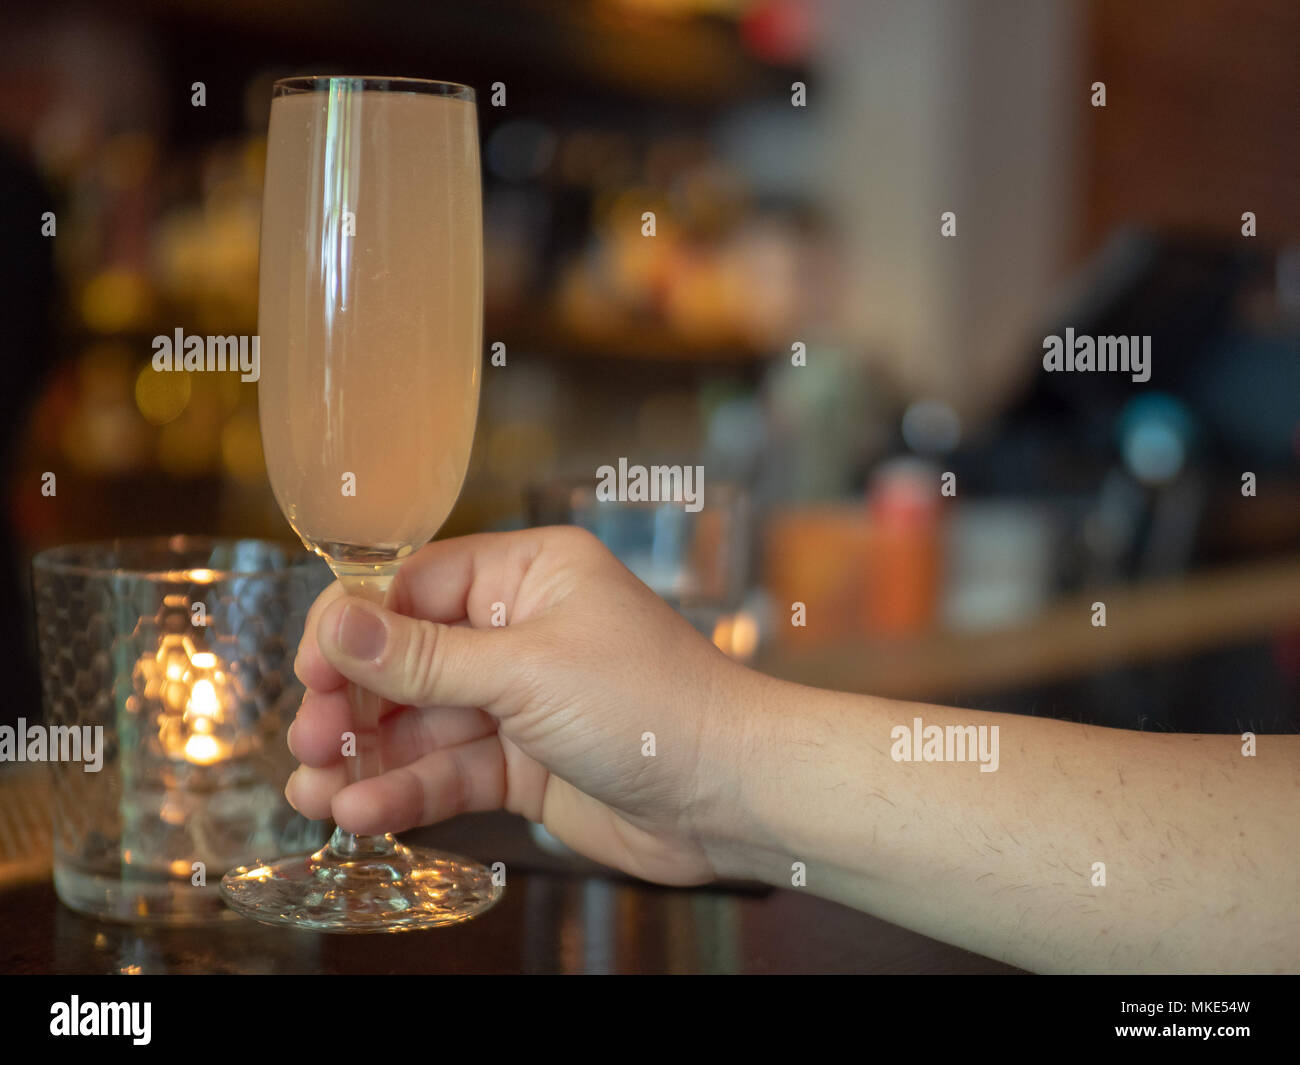 Woman lifting a wineglass filled with mimosa drink during